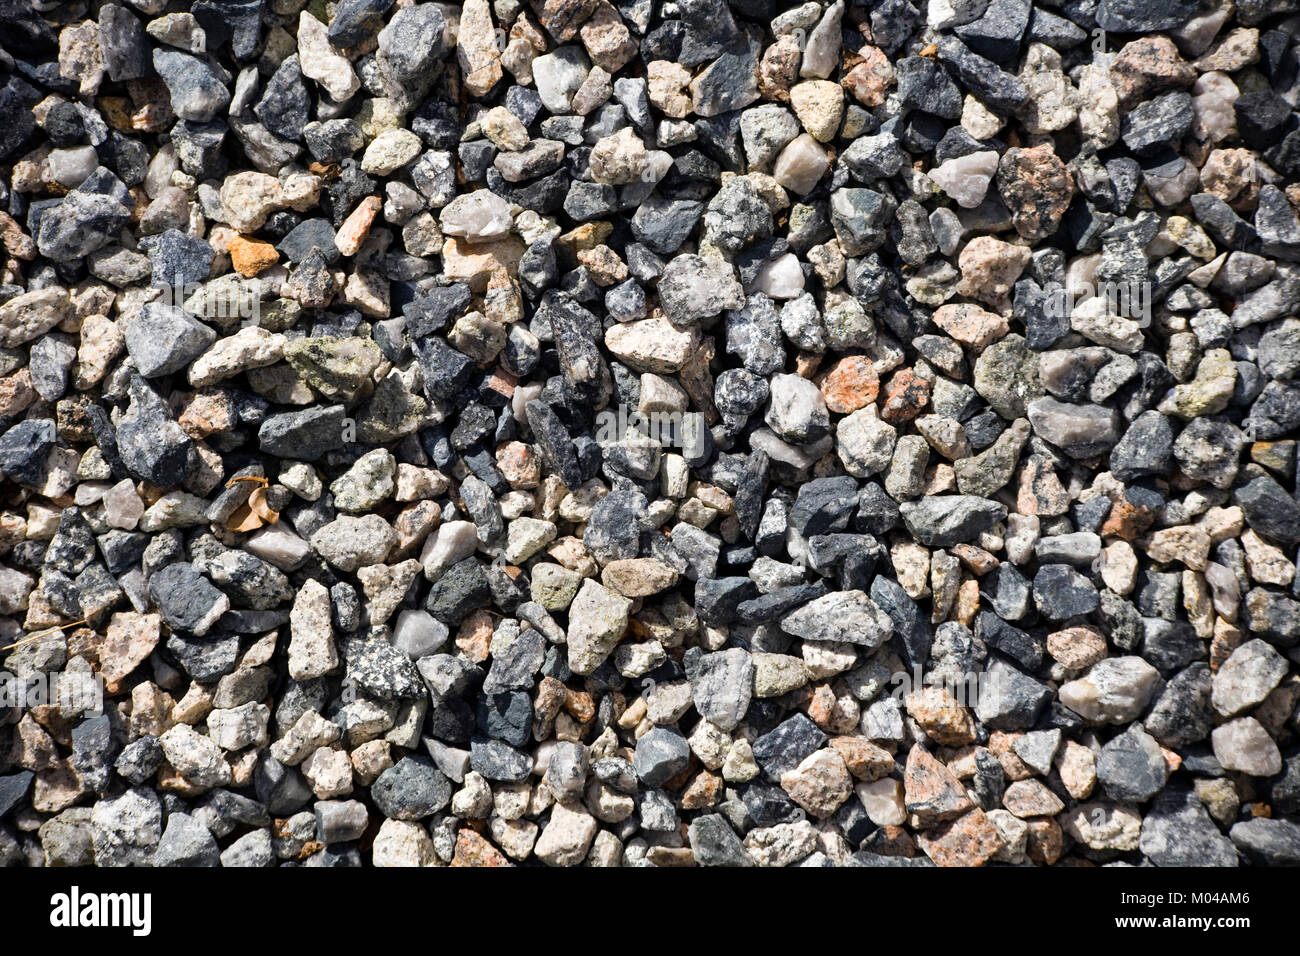 Granite chippings hard landscaping surface - Stock Image